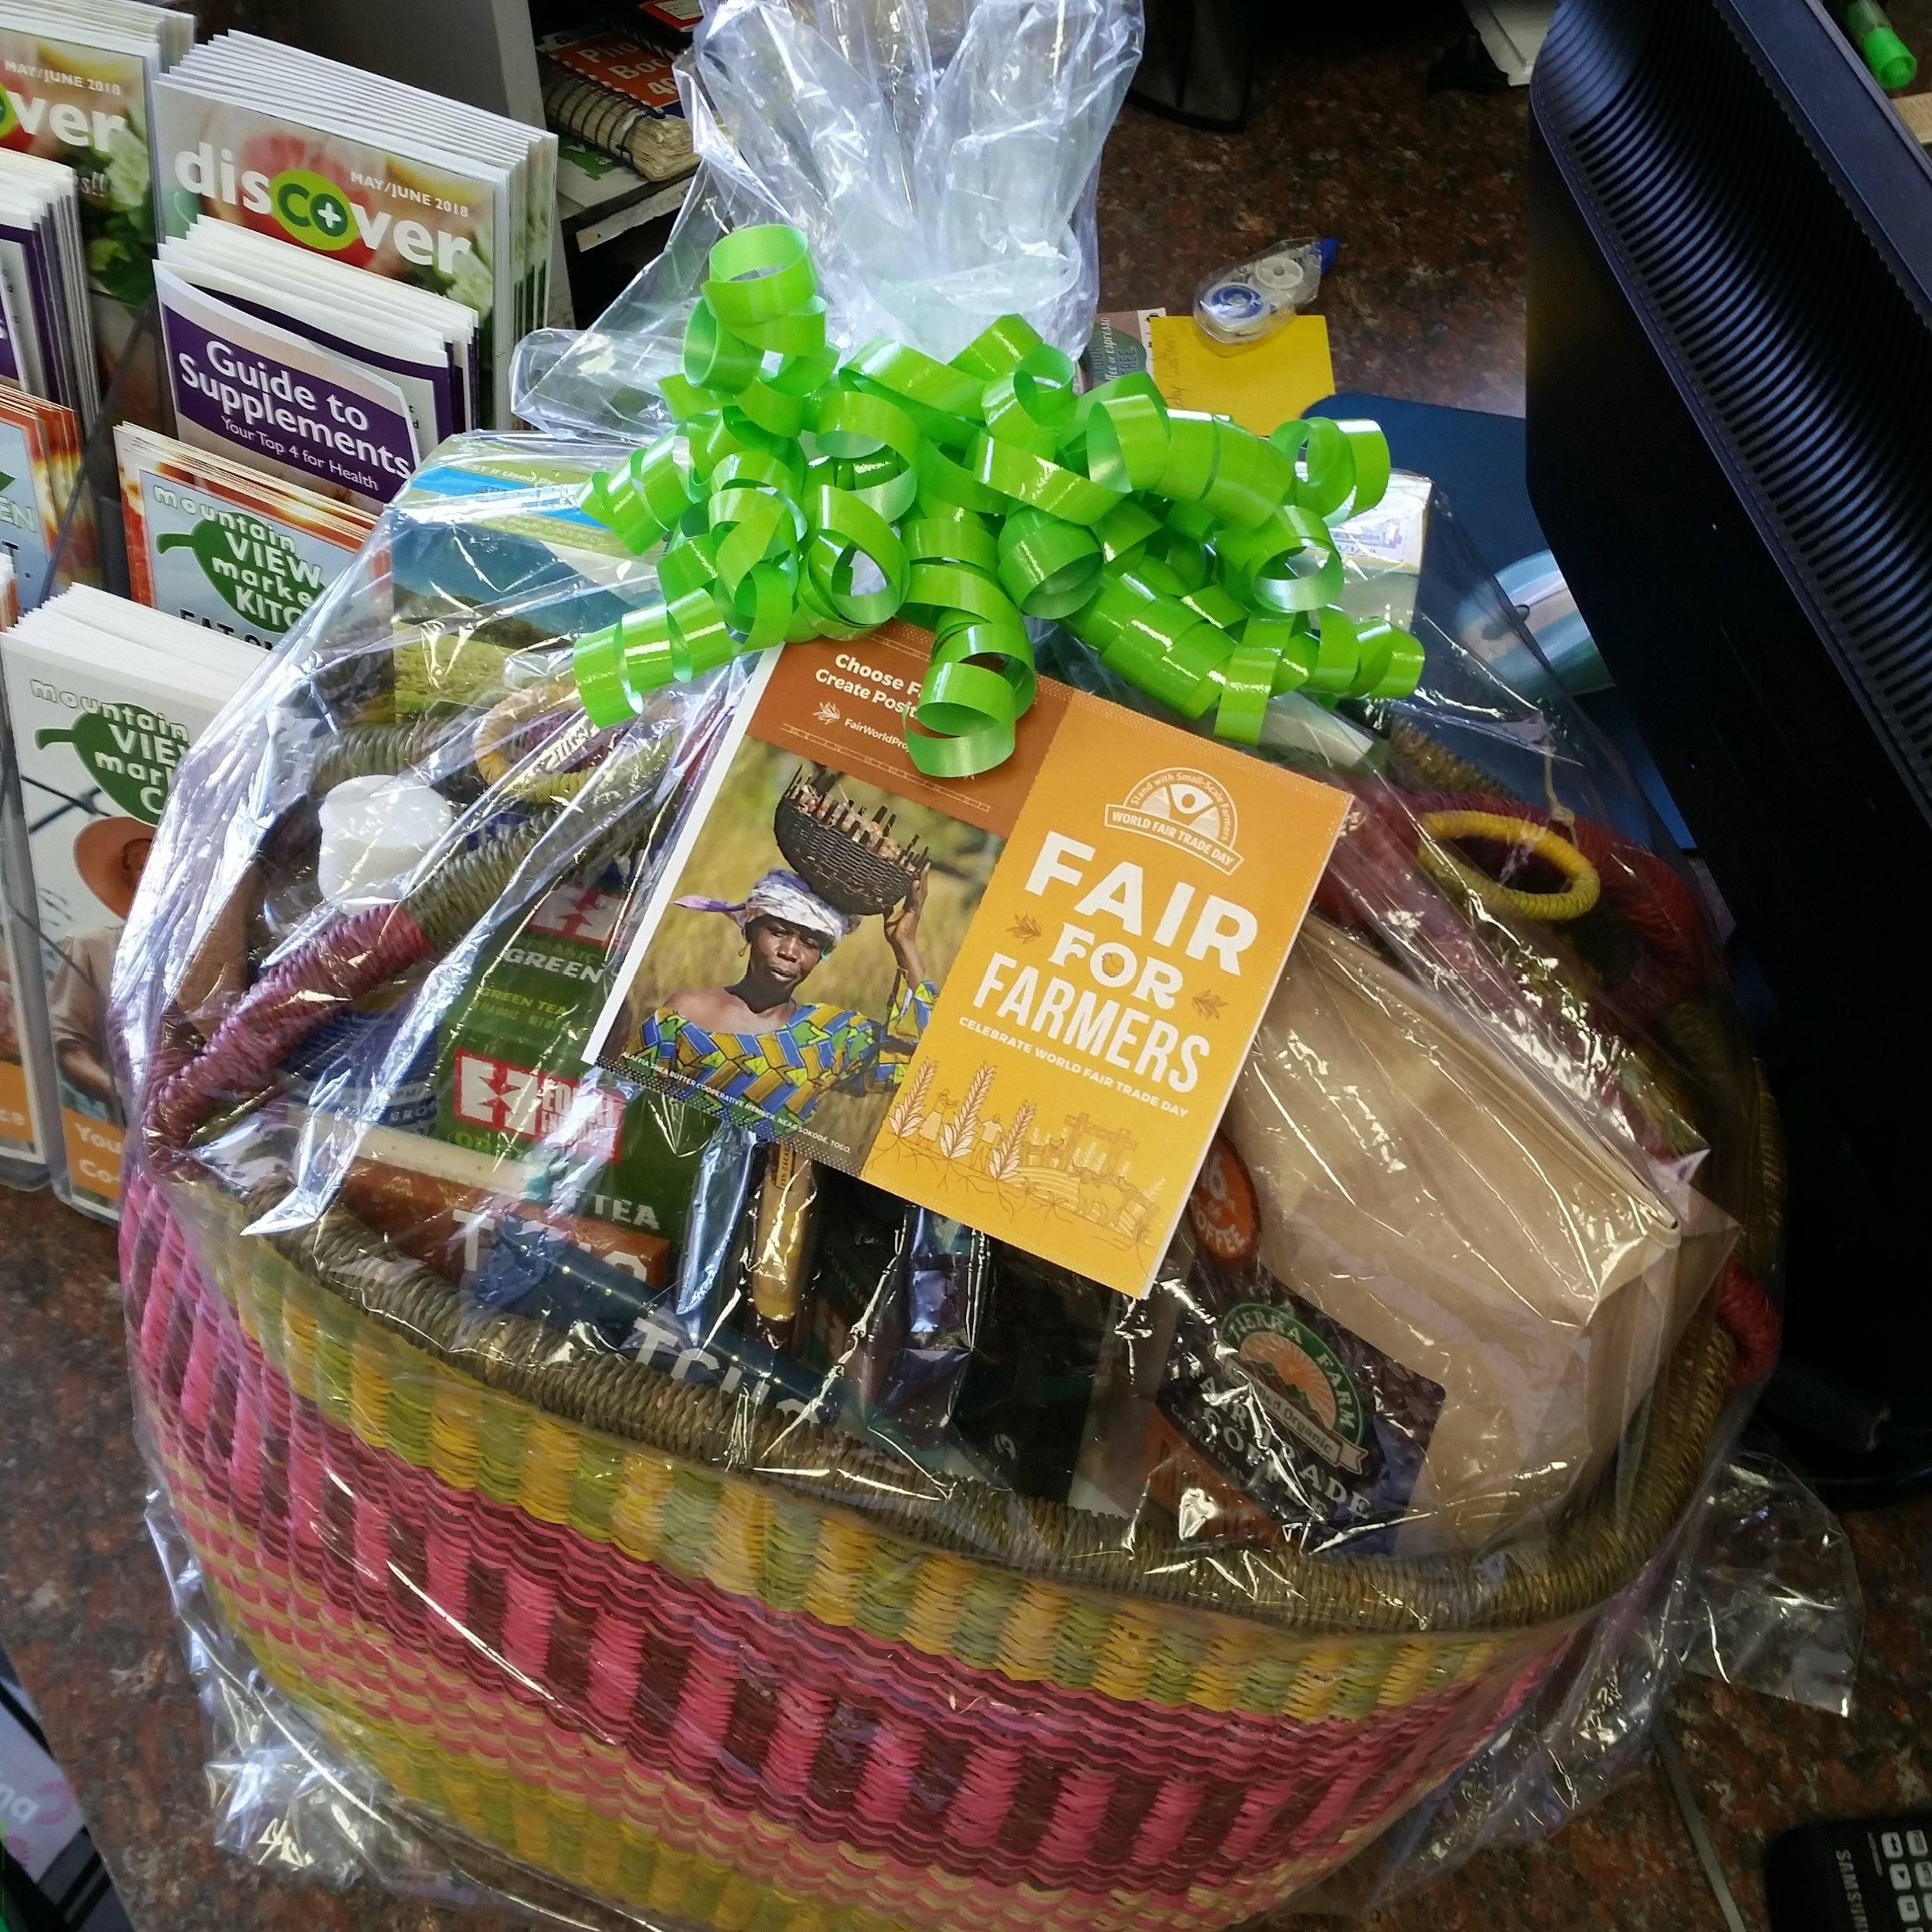 Enter at the Co+op to win this gift basket